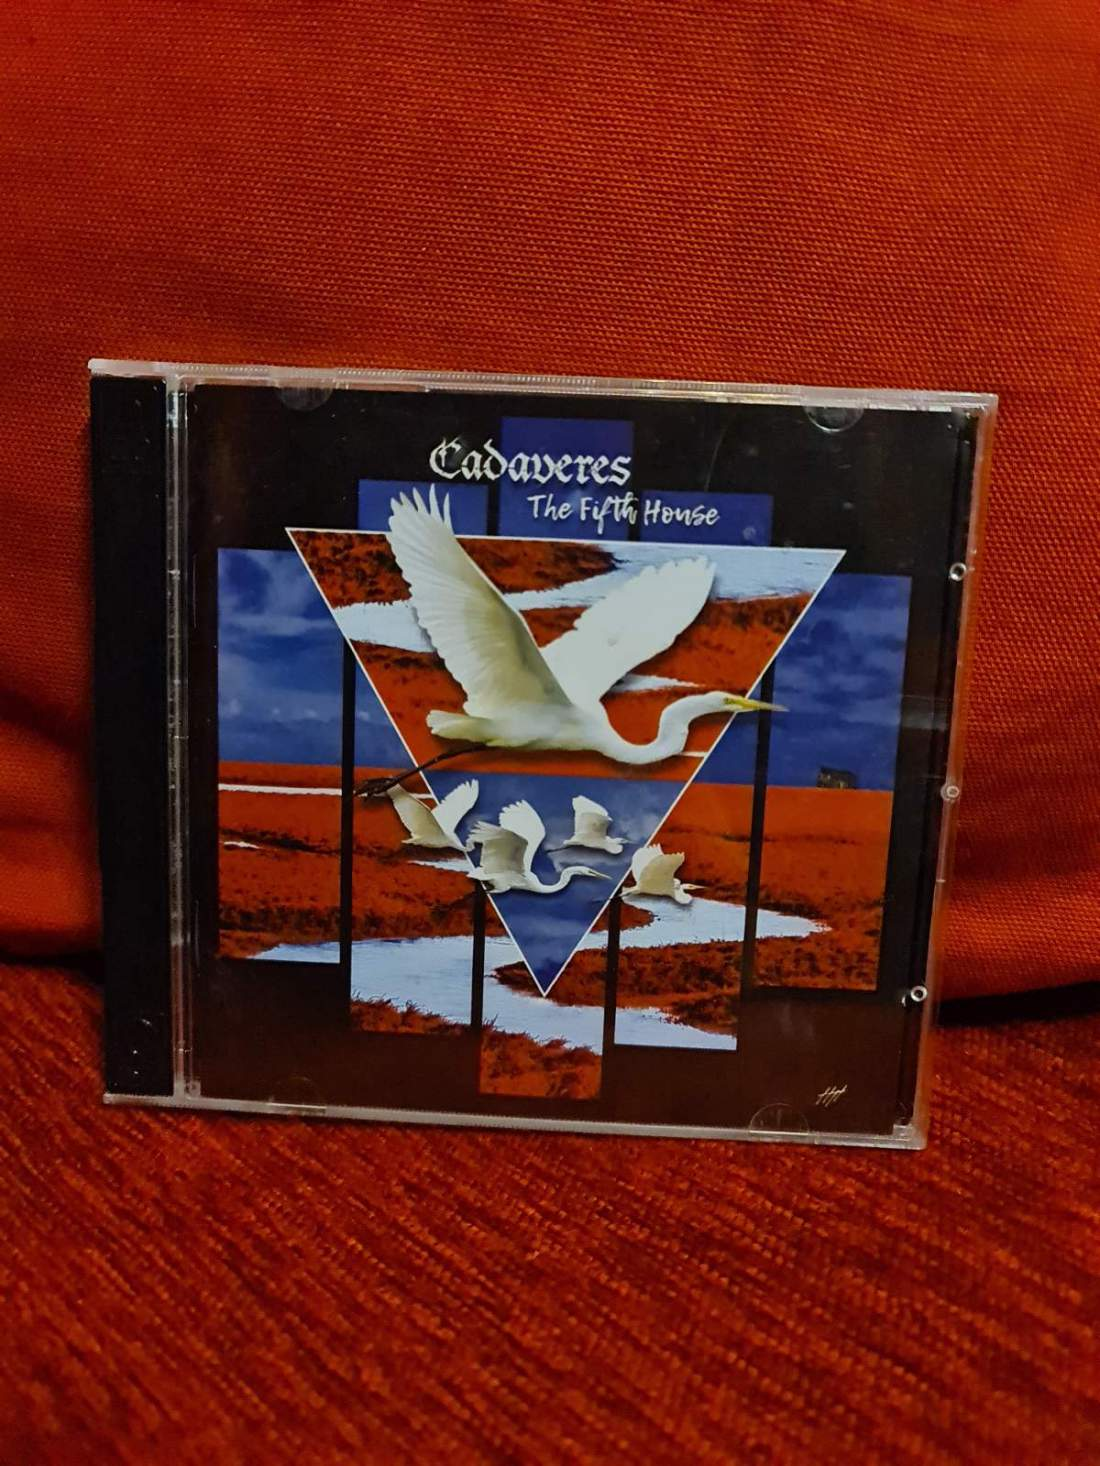 CADAVERES - THE FIFTH HOUSE + WITHIN THE 5TH CD+DVD